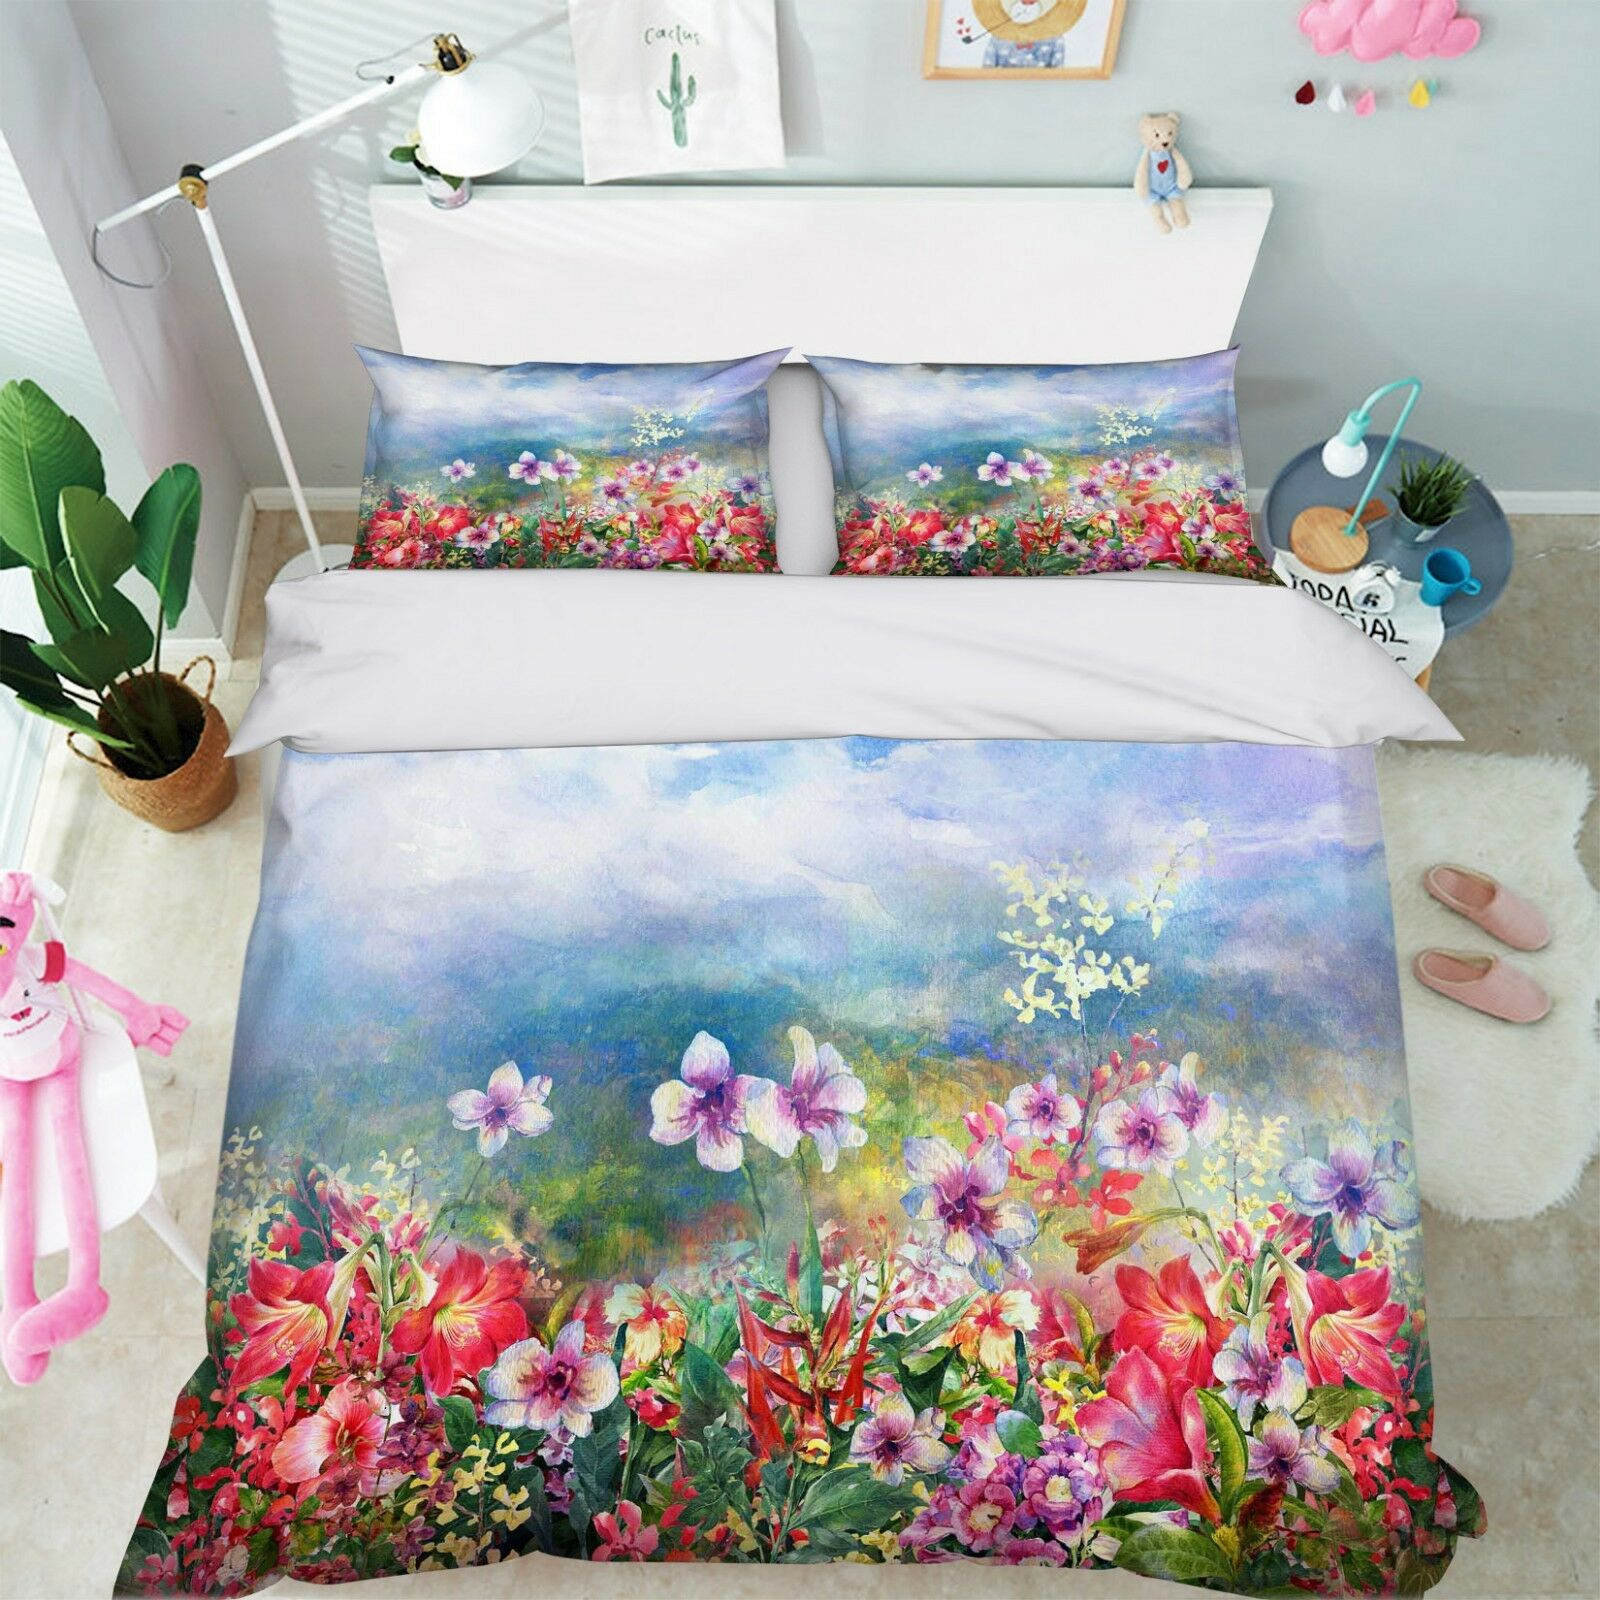 3D Paint Flower 597 Bed Pillowcases Quilt Duvet Cover Set Single King UK Summer